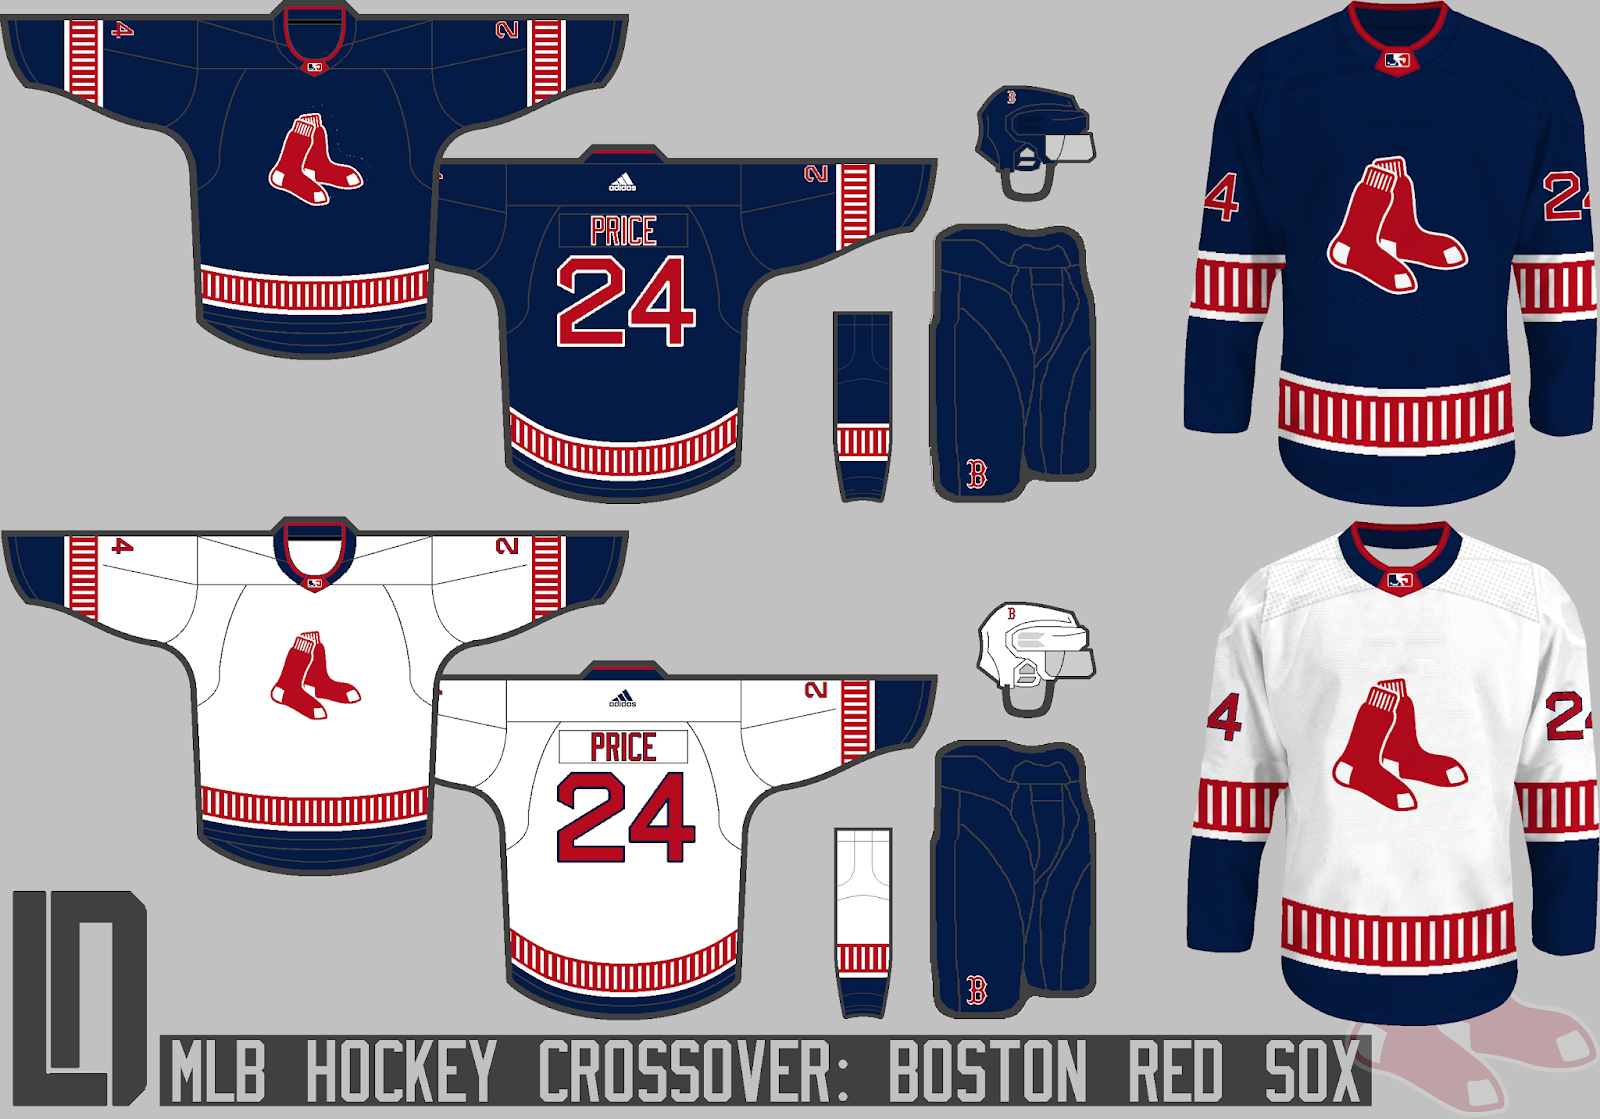 Boston+Red+Sox+Concept.png